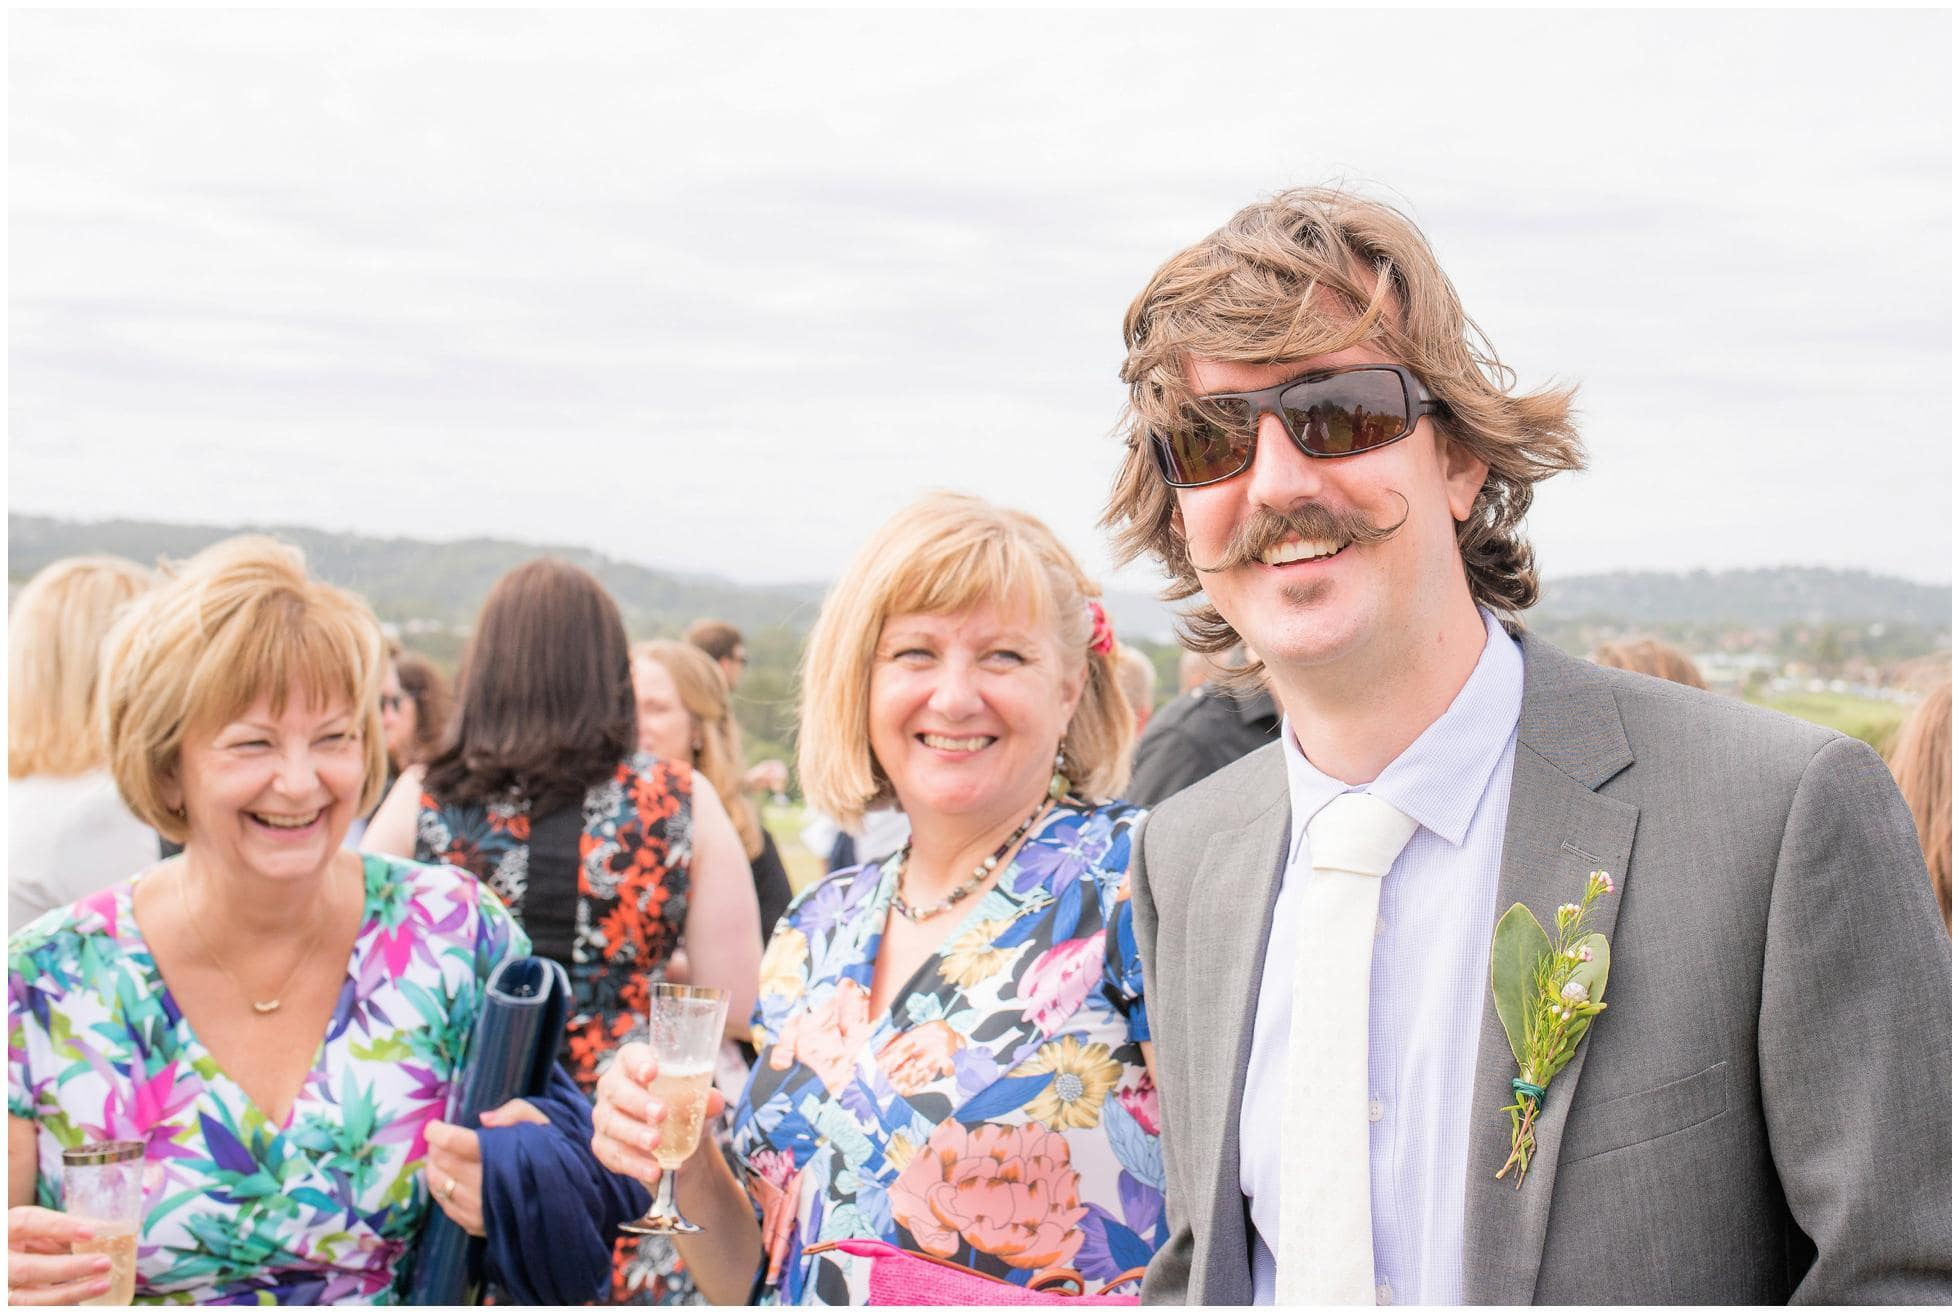 The groom with his Mum and aunts enjoying a relaxed wedding photography moment